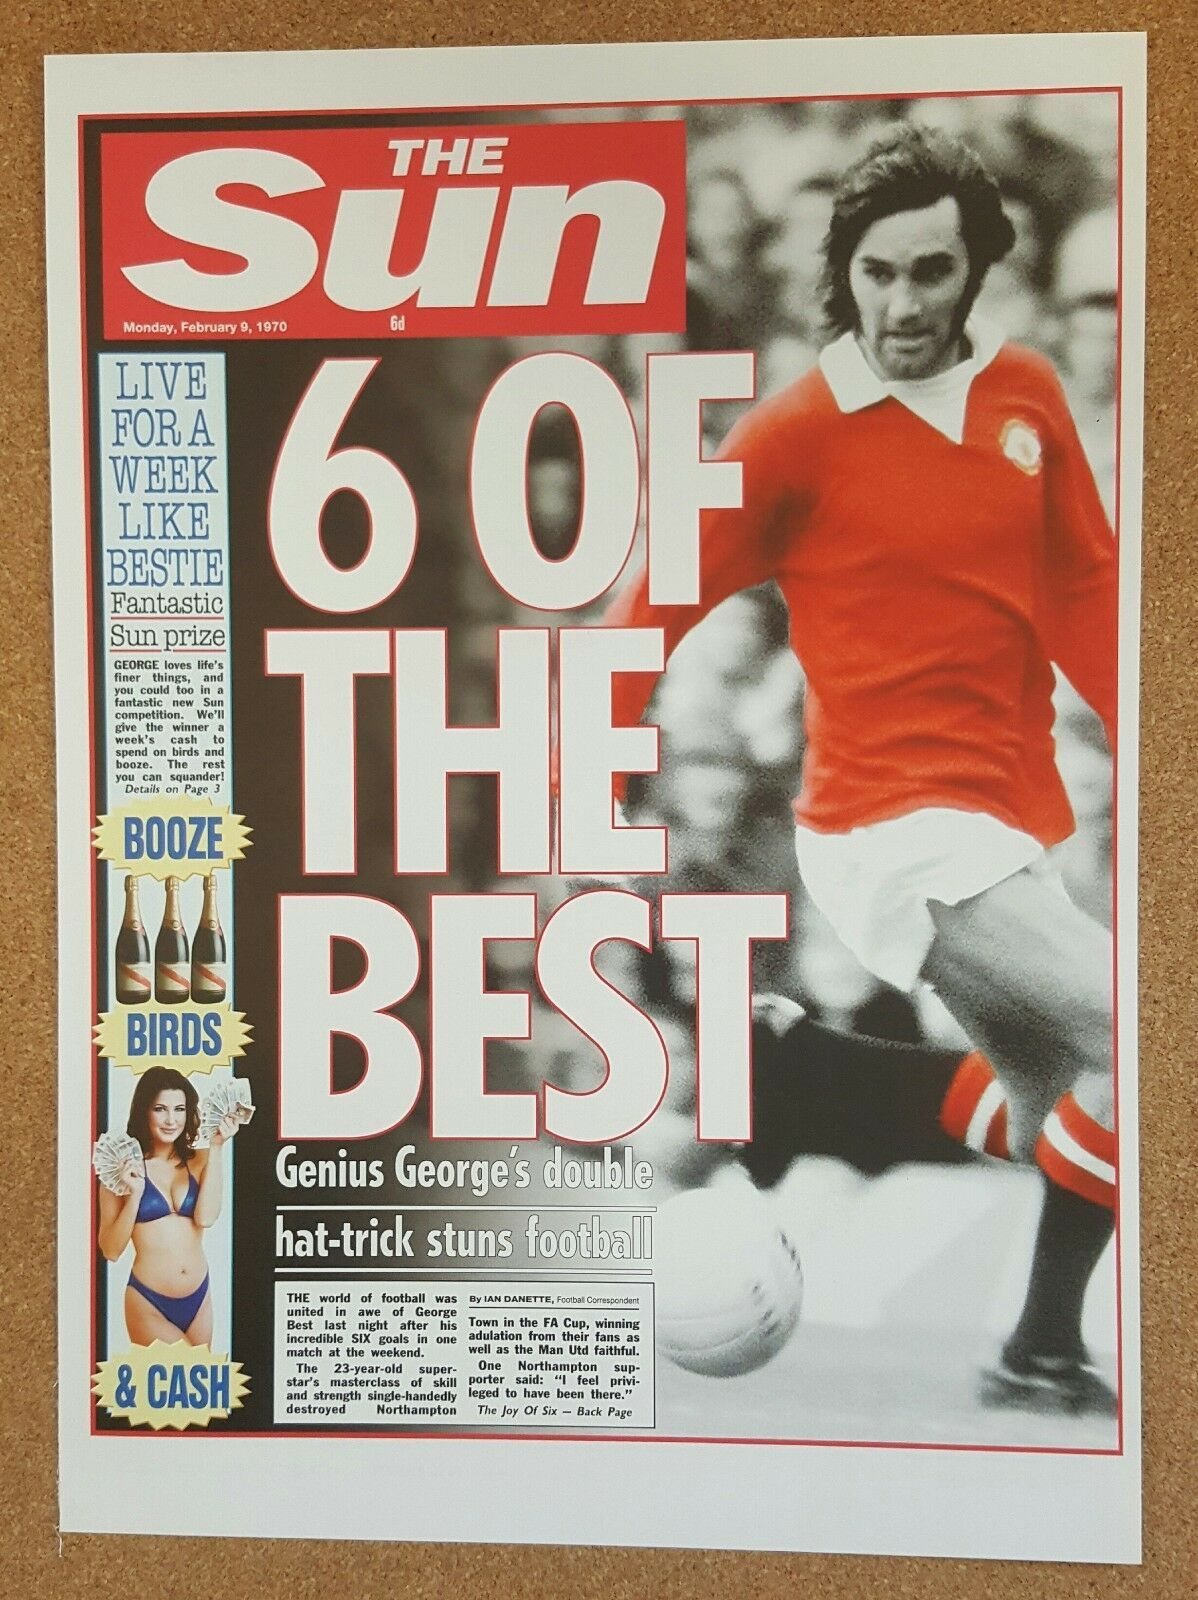 Details about Misc The Sun Newspaper Famous Event